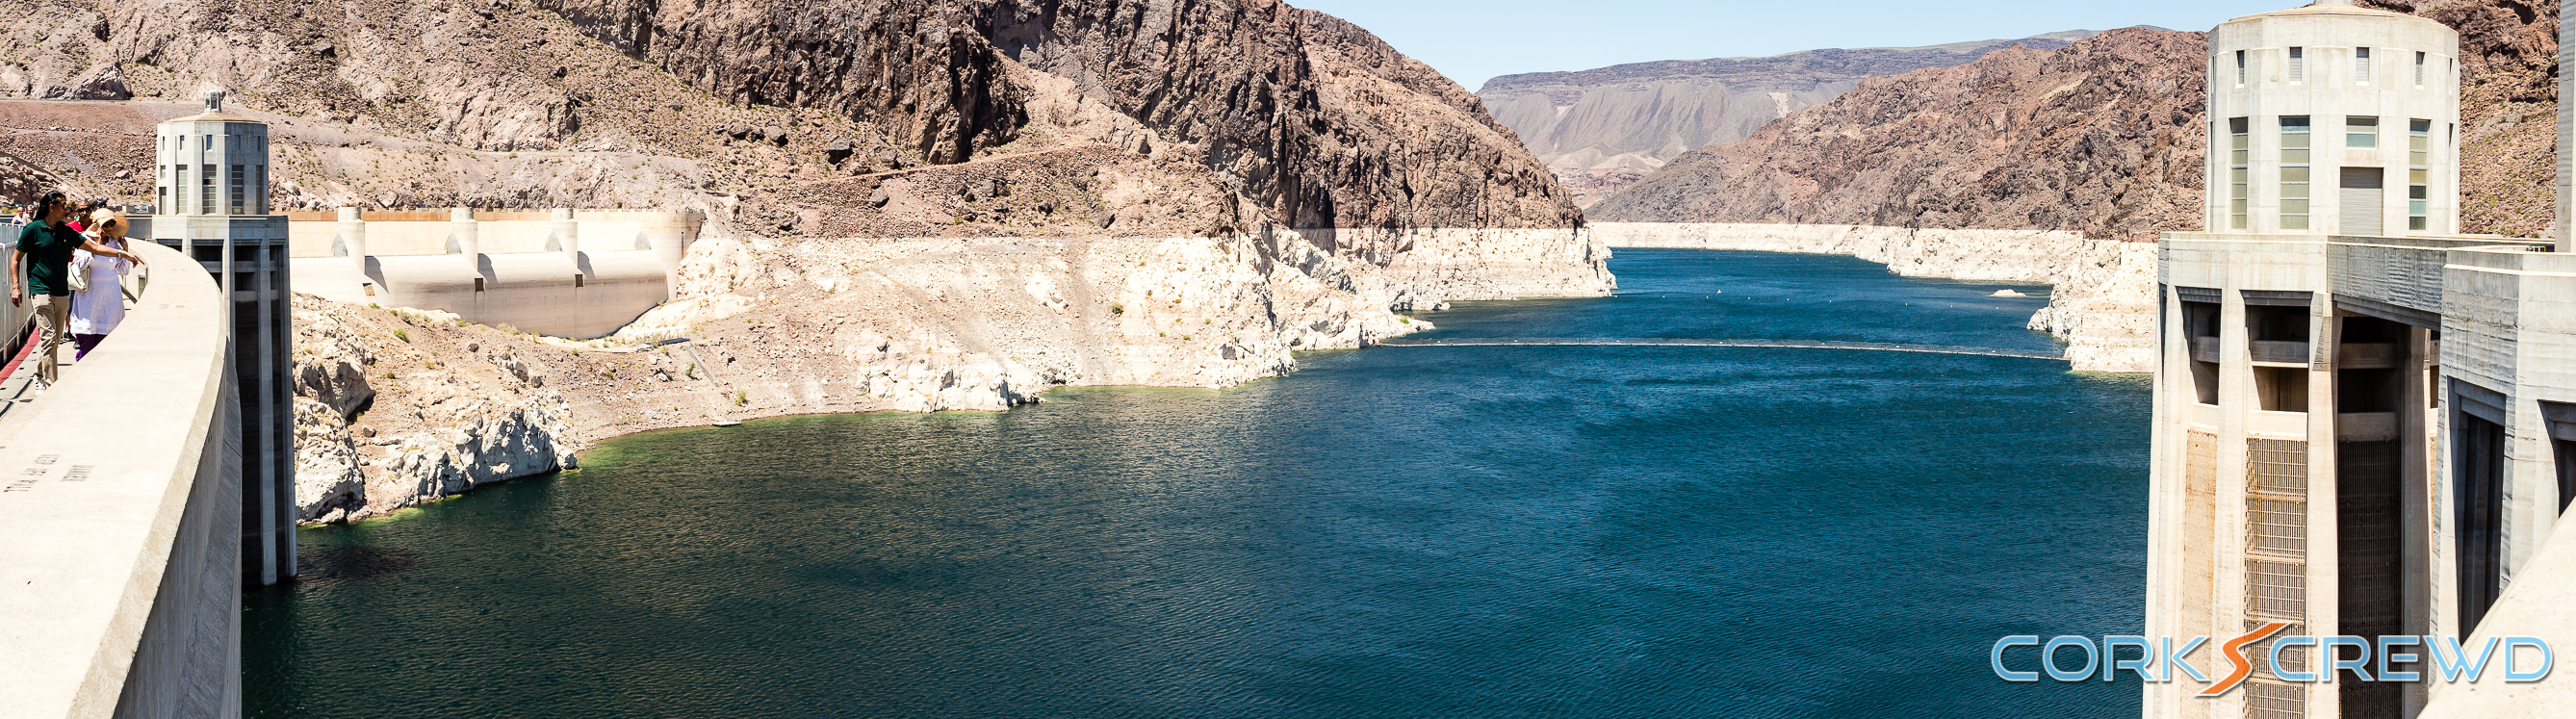 A view of the reservoir from the Hoover Dam.